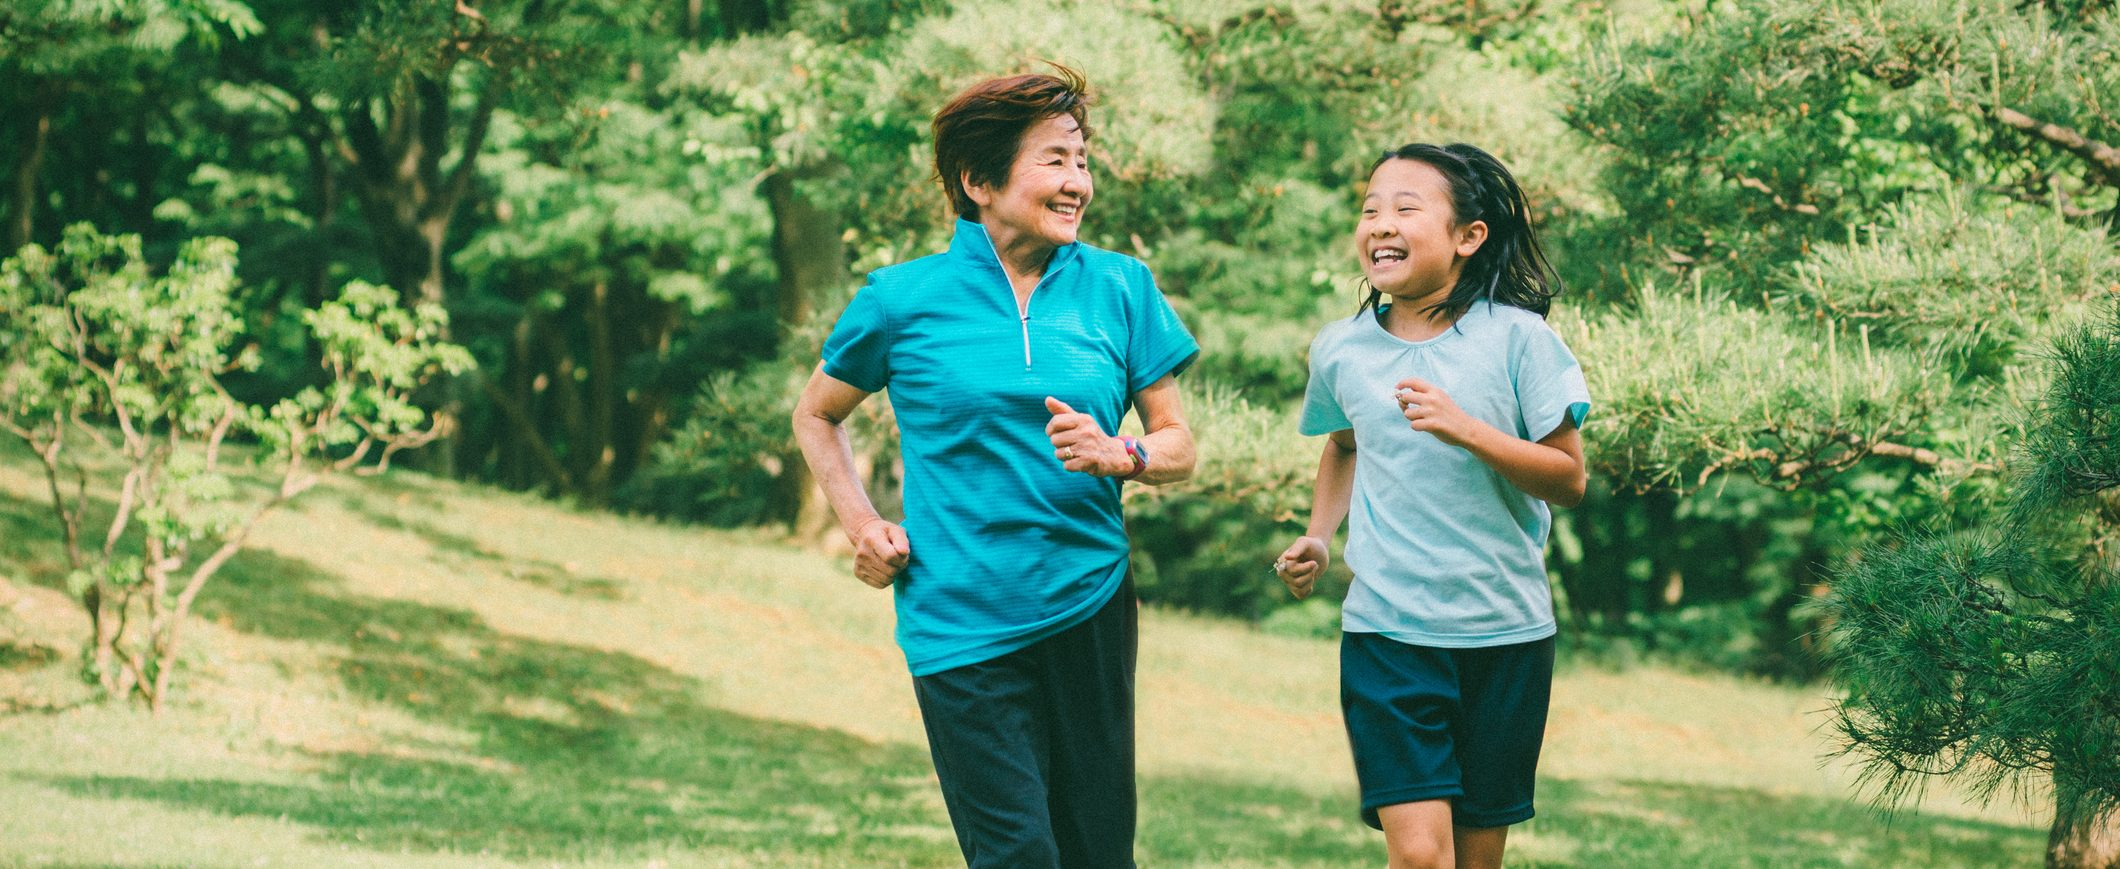 Grandmother and granddaughter go for a run